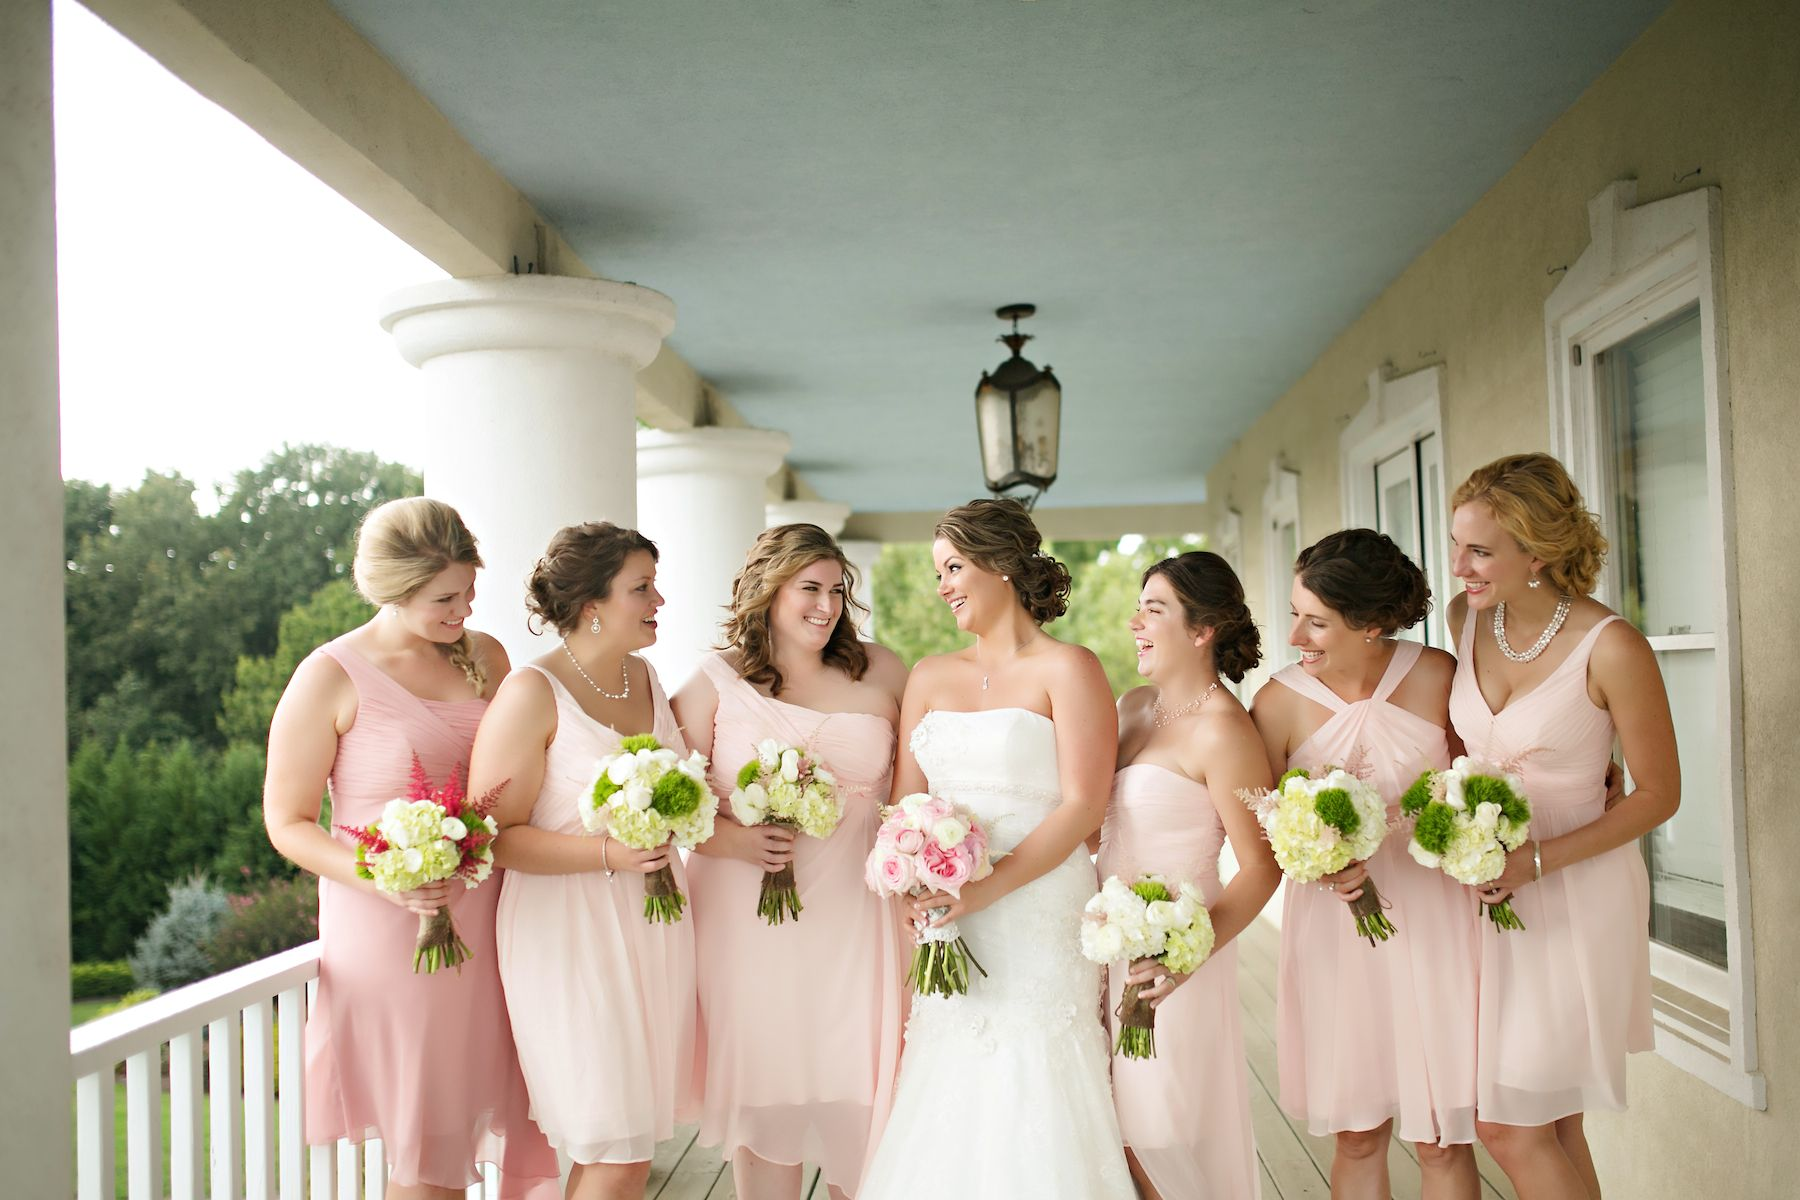 Pops of pink! These short bridesmaids dresses are so beautiful and with different necklines, helps to satisfy all of your ladies // Photo by Katherine Birkbeck  #wedding #bridesmaids #bridesmaidsdresses #castletonfarms #weddingcolors